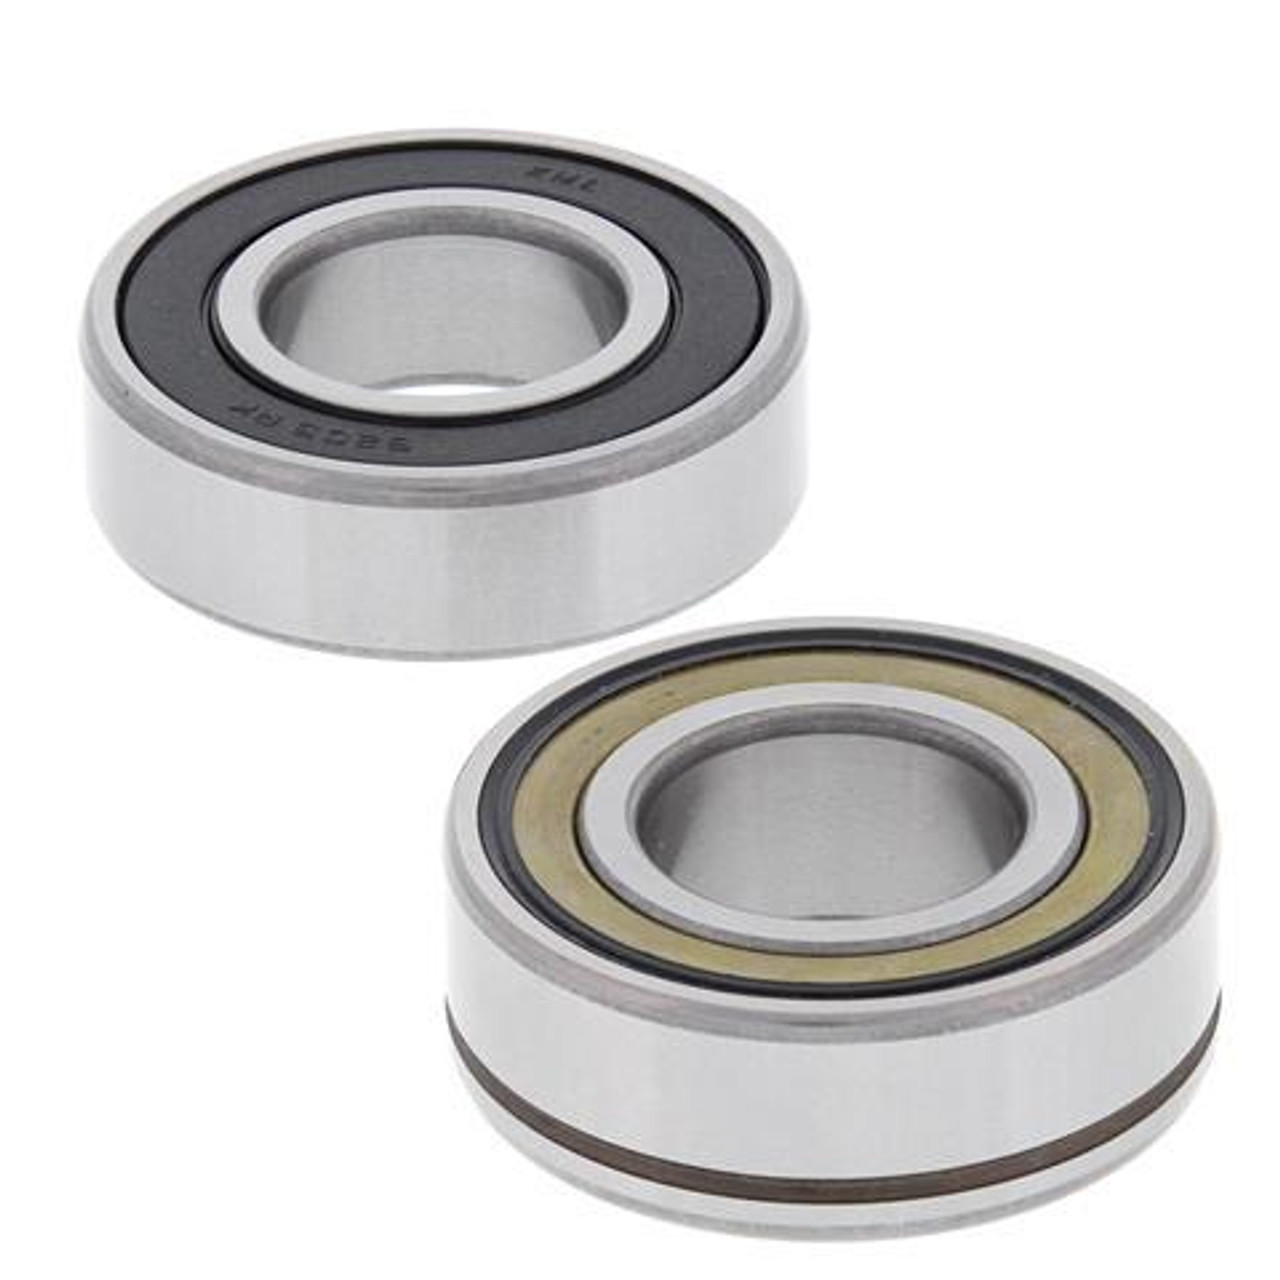 Harley Davidson XL1200X Forty Eight 2011-2016 Front Wheel Bearings